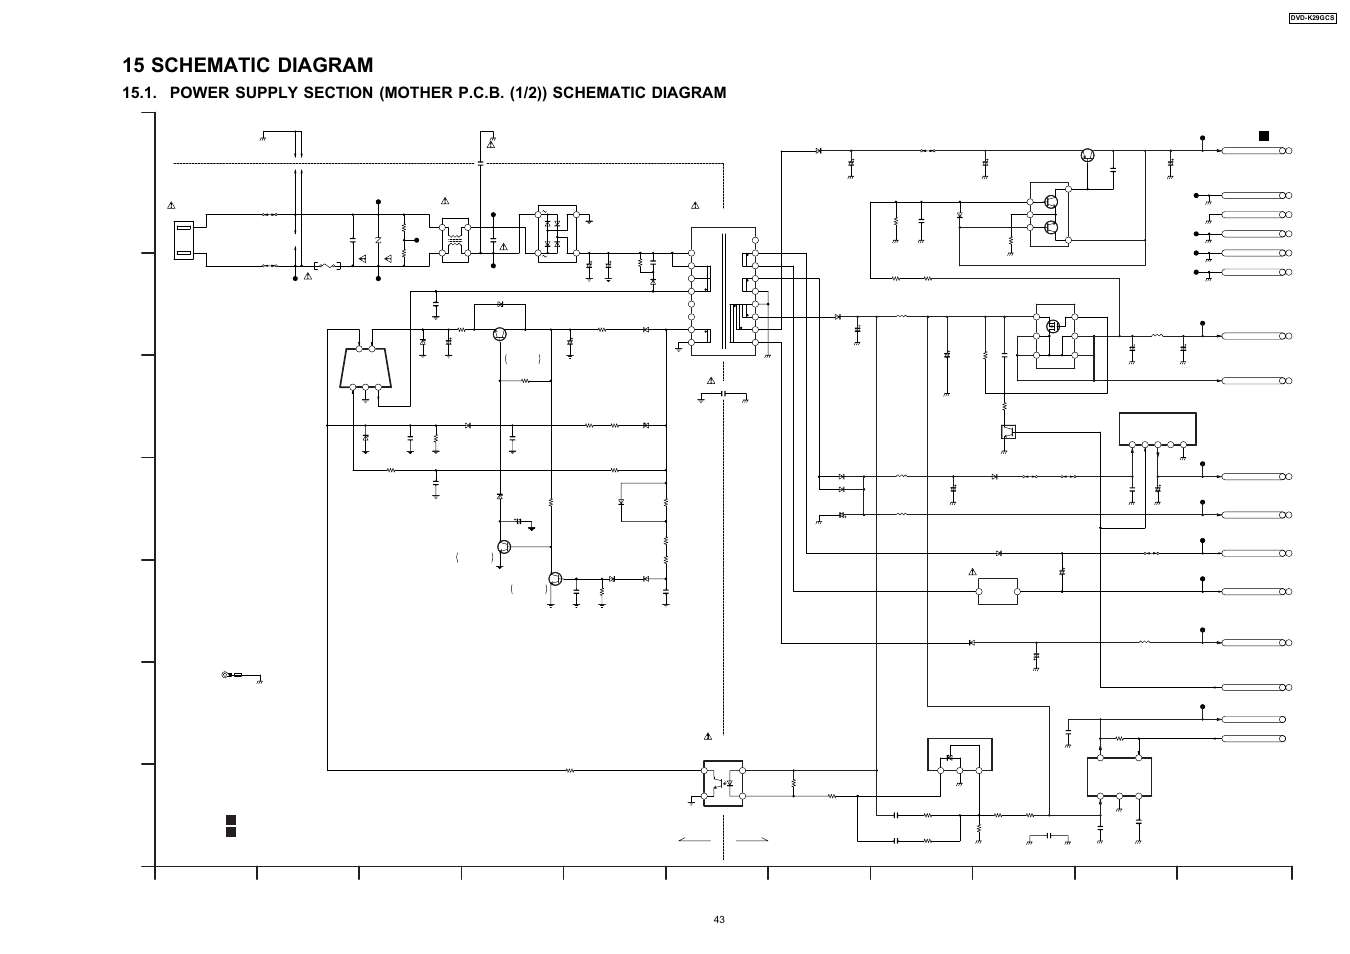 Panasonic Schematic Diagram Doing Wiring The New Way Washing Machine Pdf 15 Cold Hot Dvd K29gcs User Manual Rh Manualsdir Com Crt Tv Microwave Oven